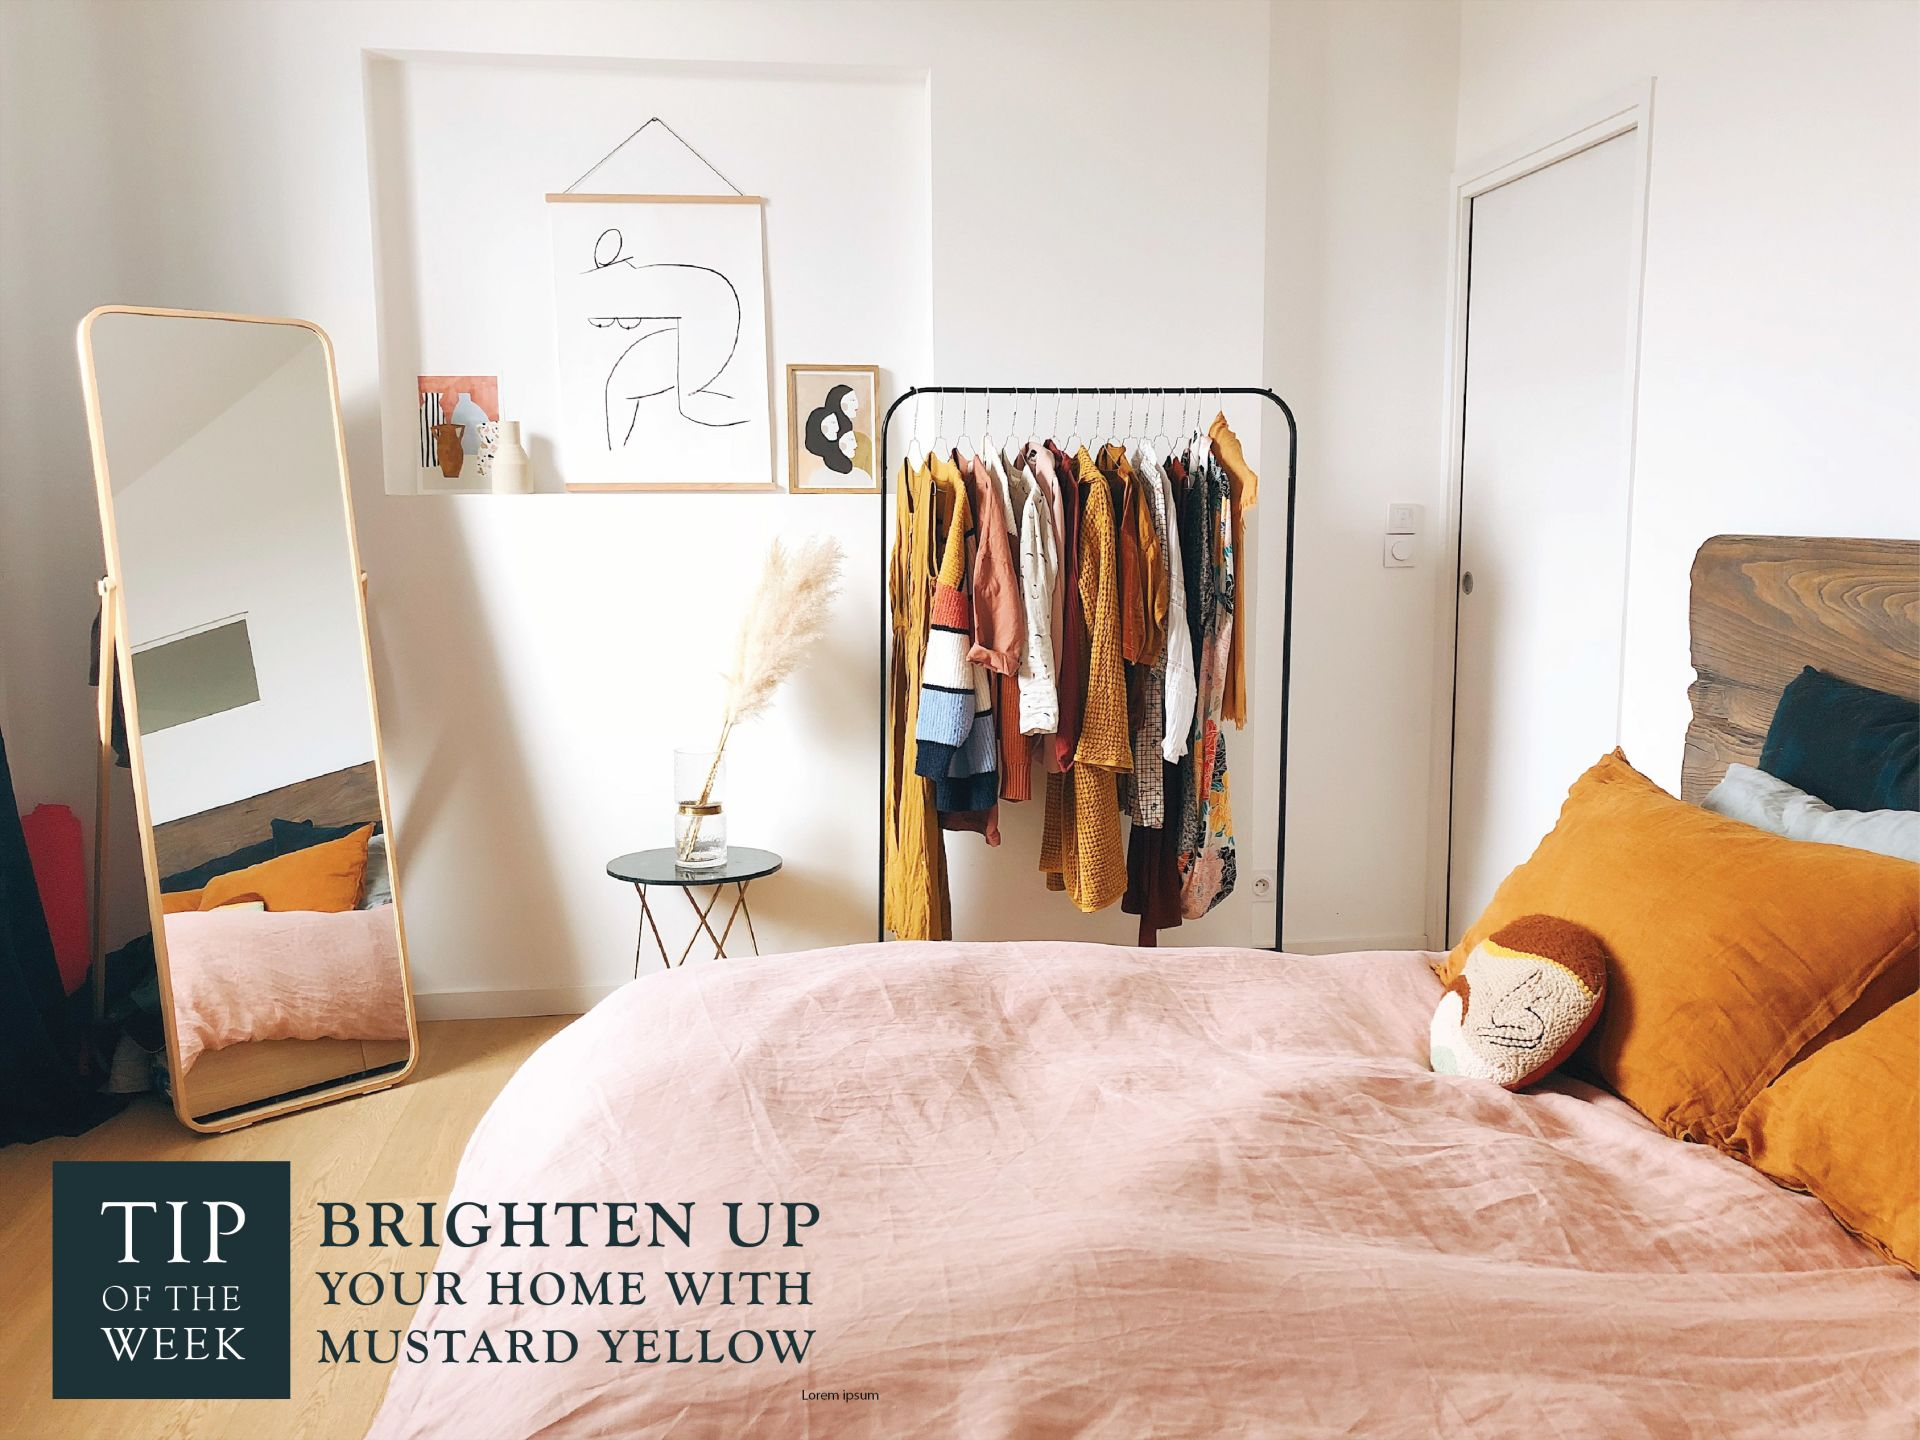 Brighten Up Your Home with Mustard Yellow